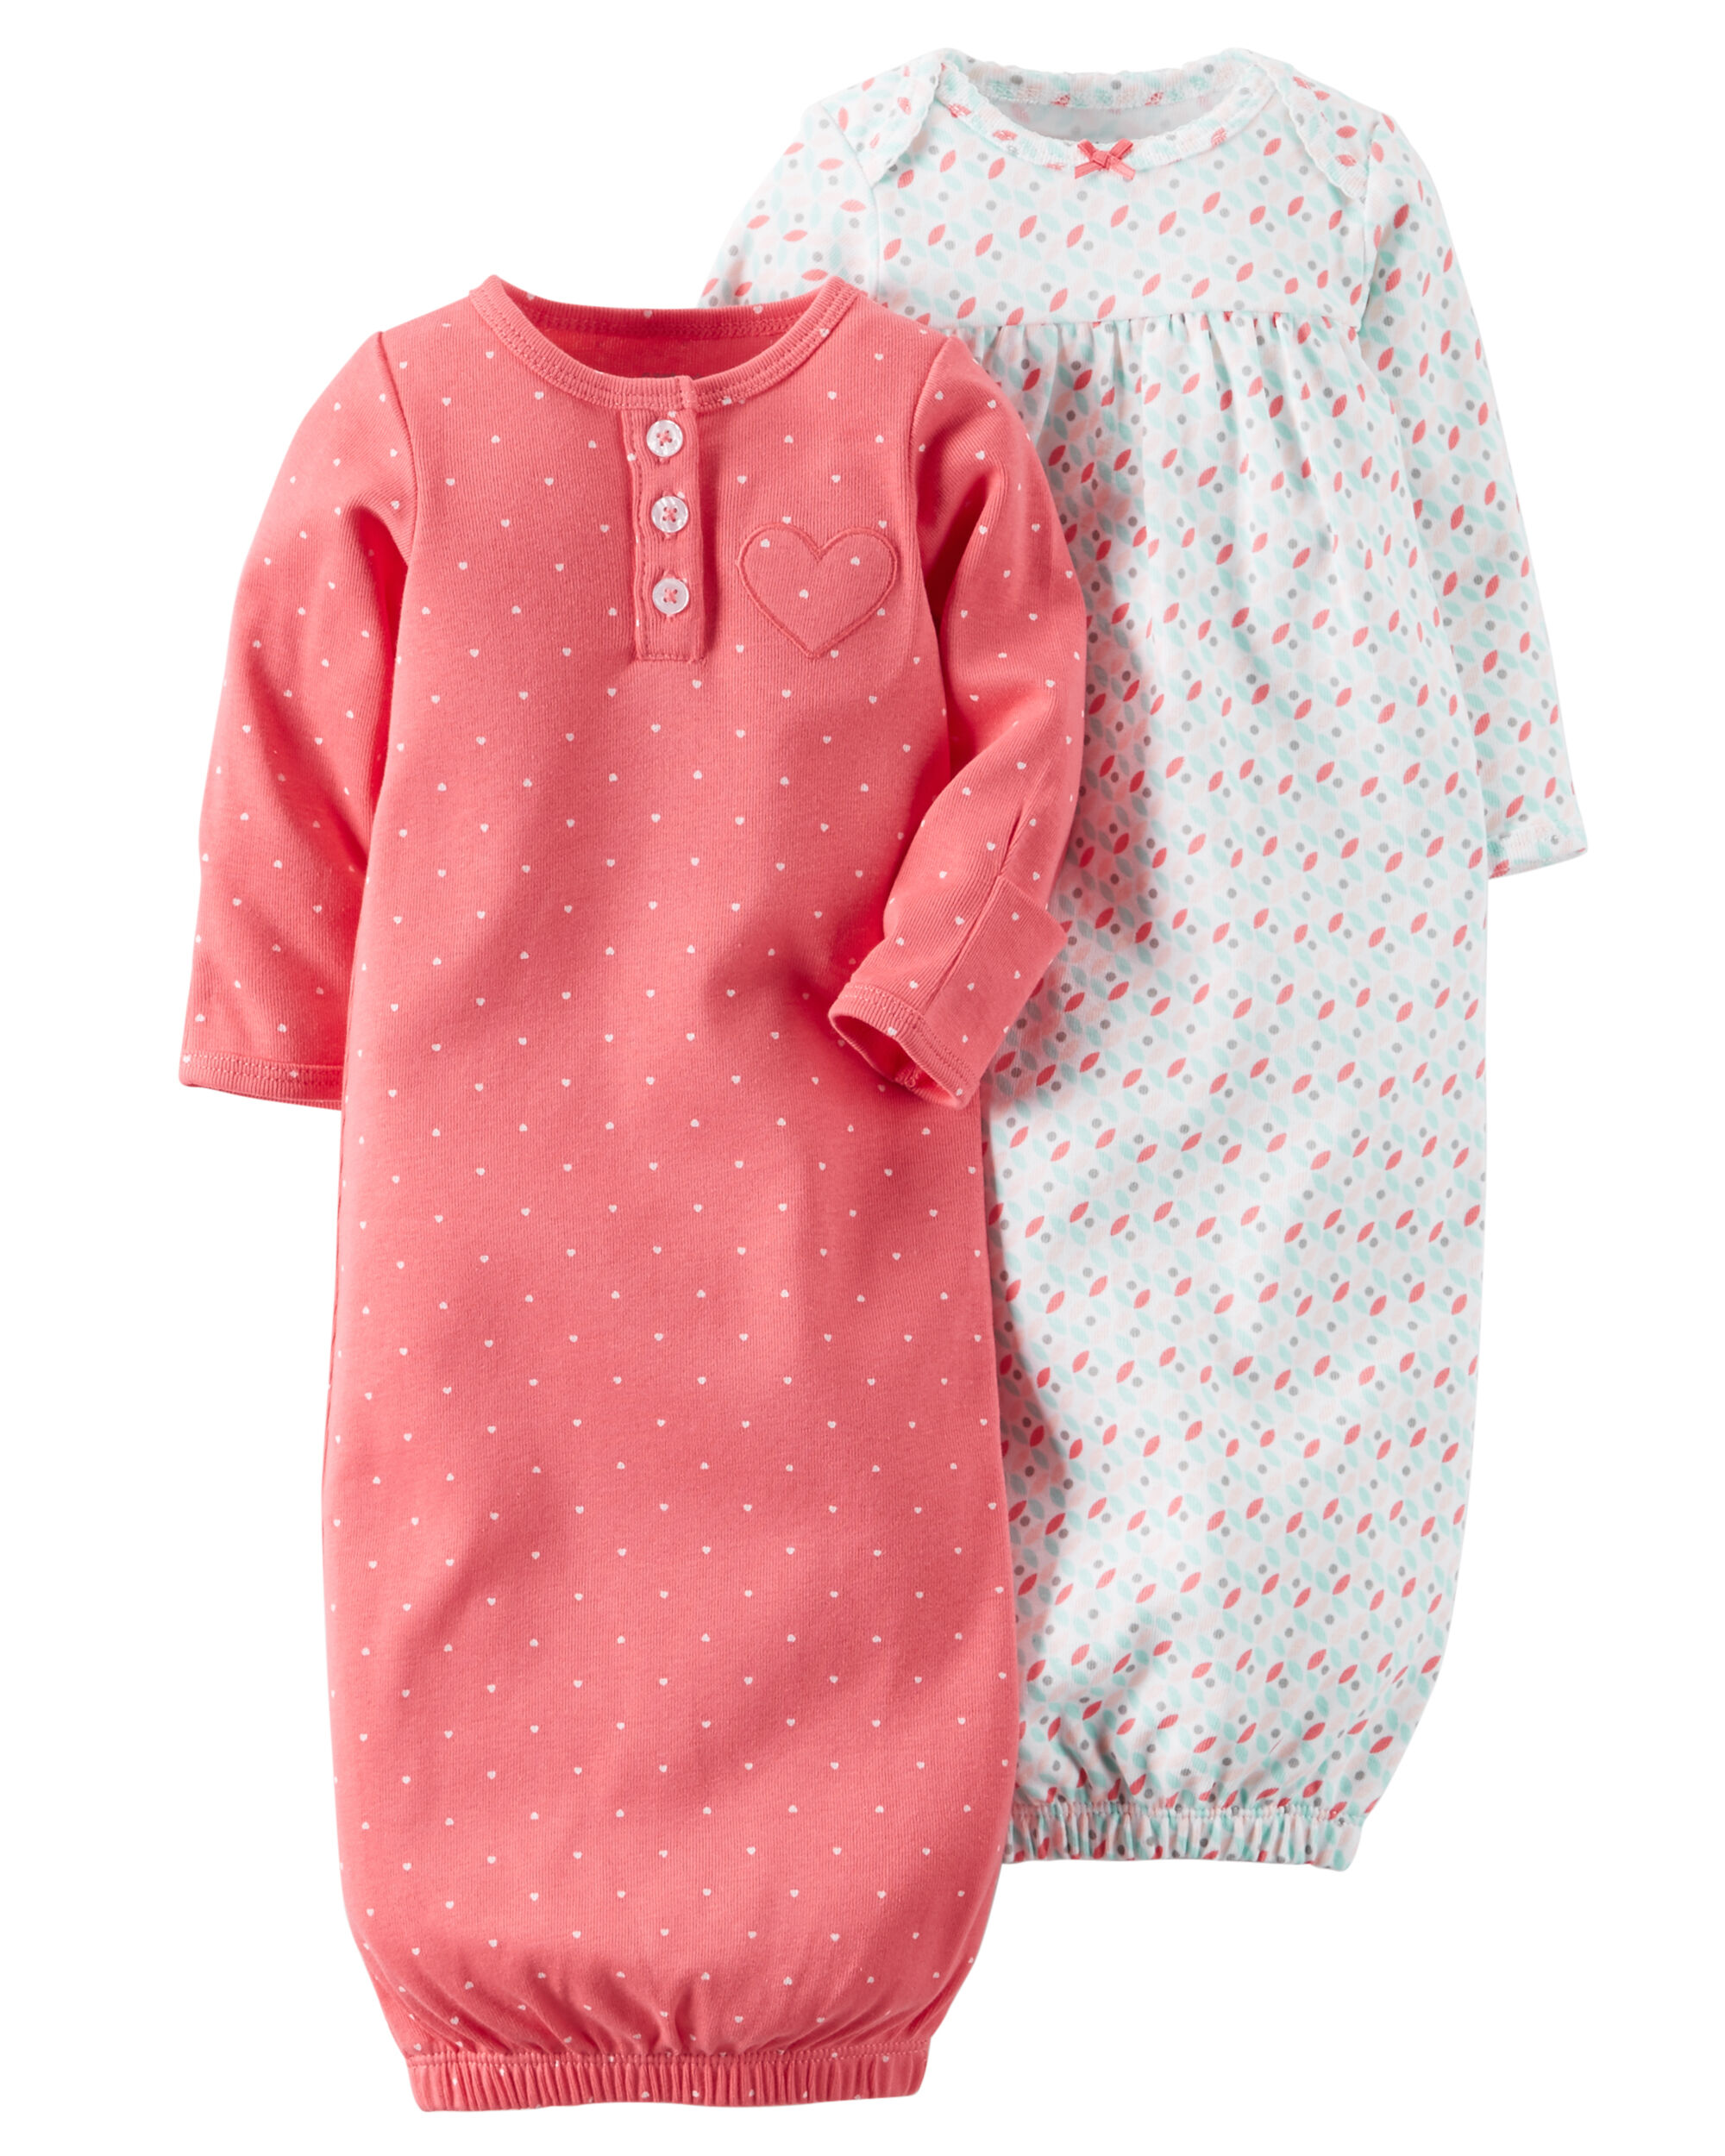 2-Pack Babysoft Sleeper Gowns | Carters.com